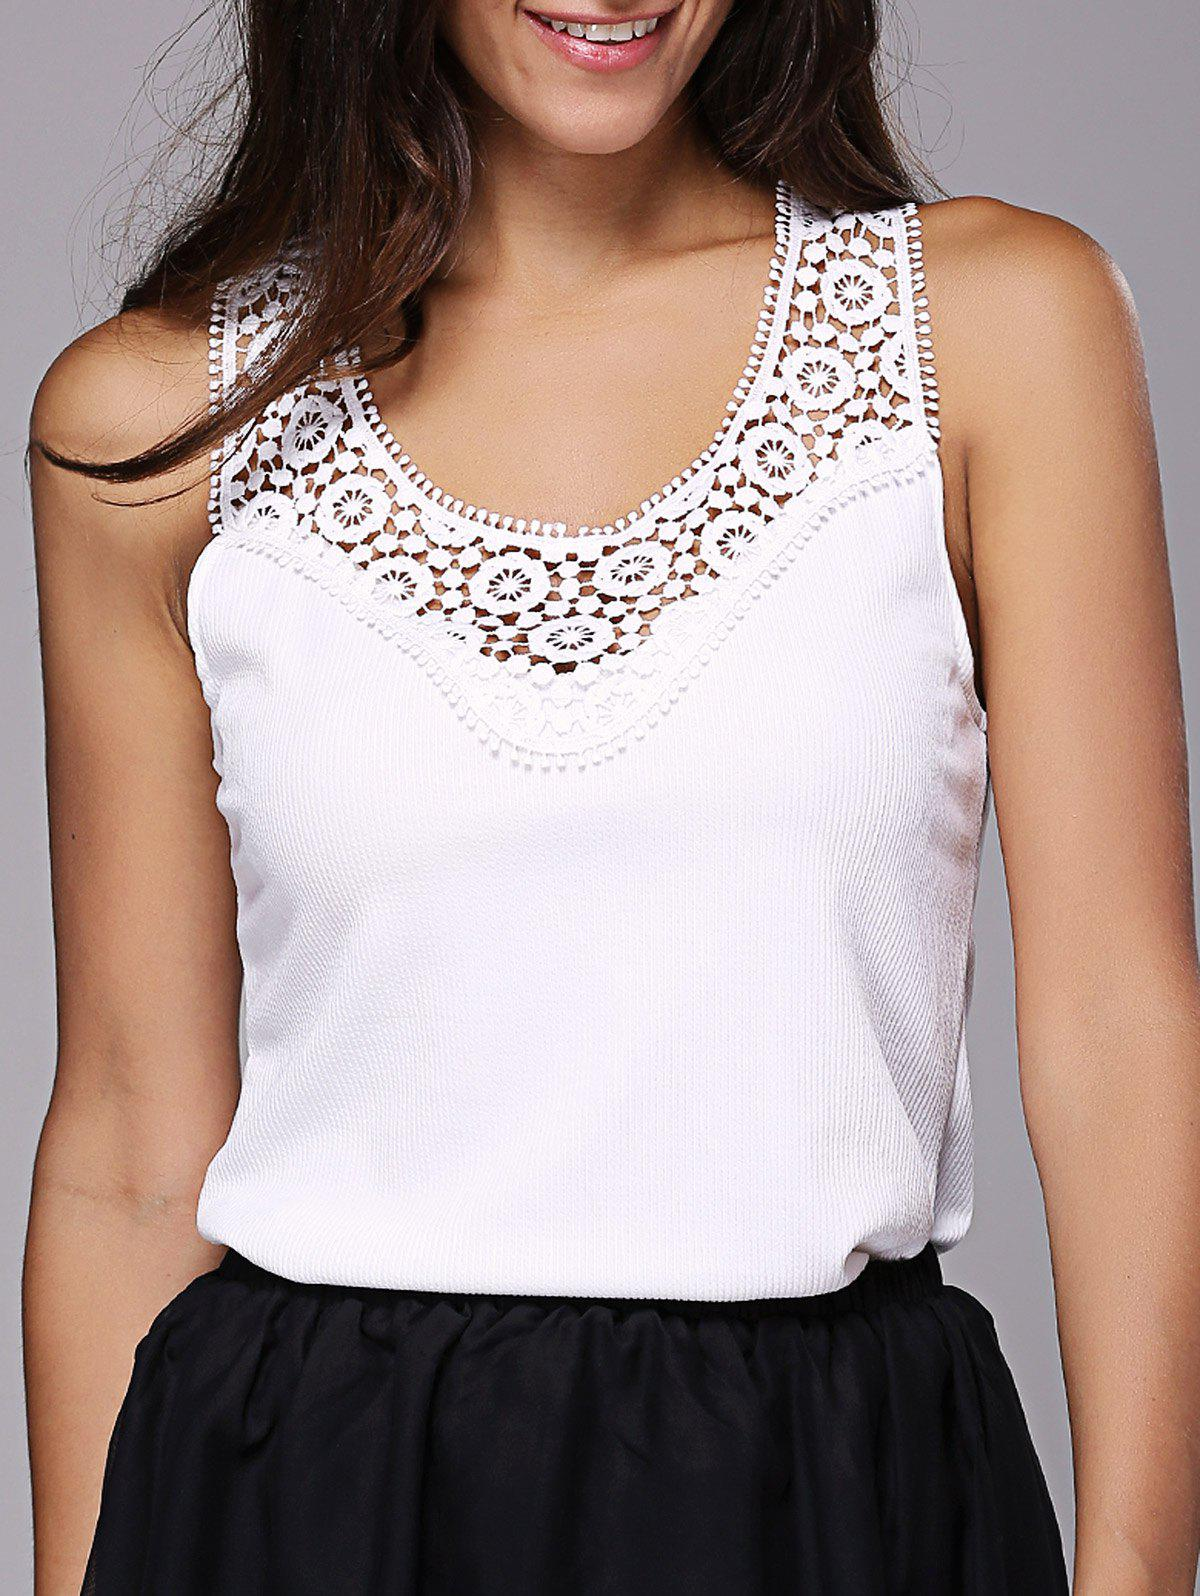 Stylish Laced  Racerback Tank Top For Women - WHITE XL